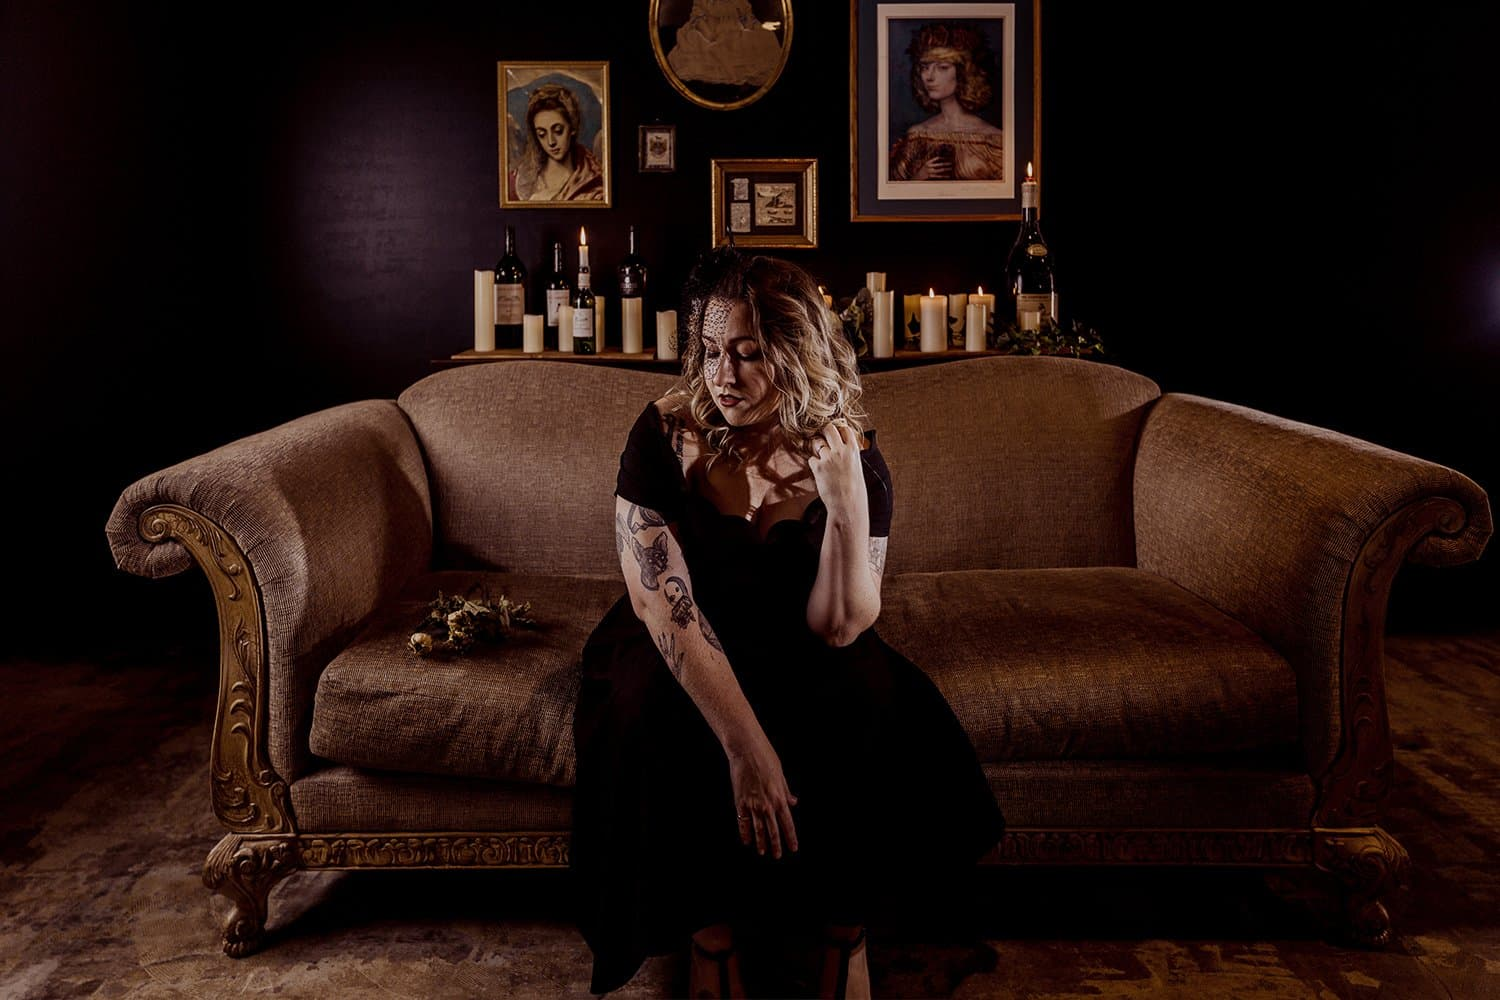 music video woman looking mournful wearing funeral clothes sitting on brown couch with candles